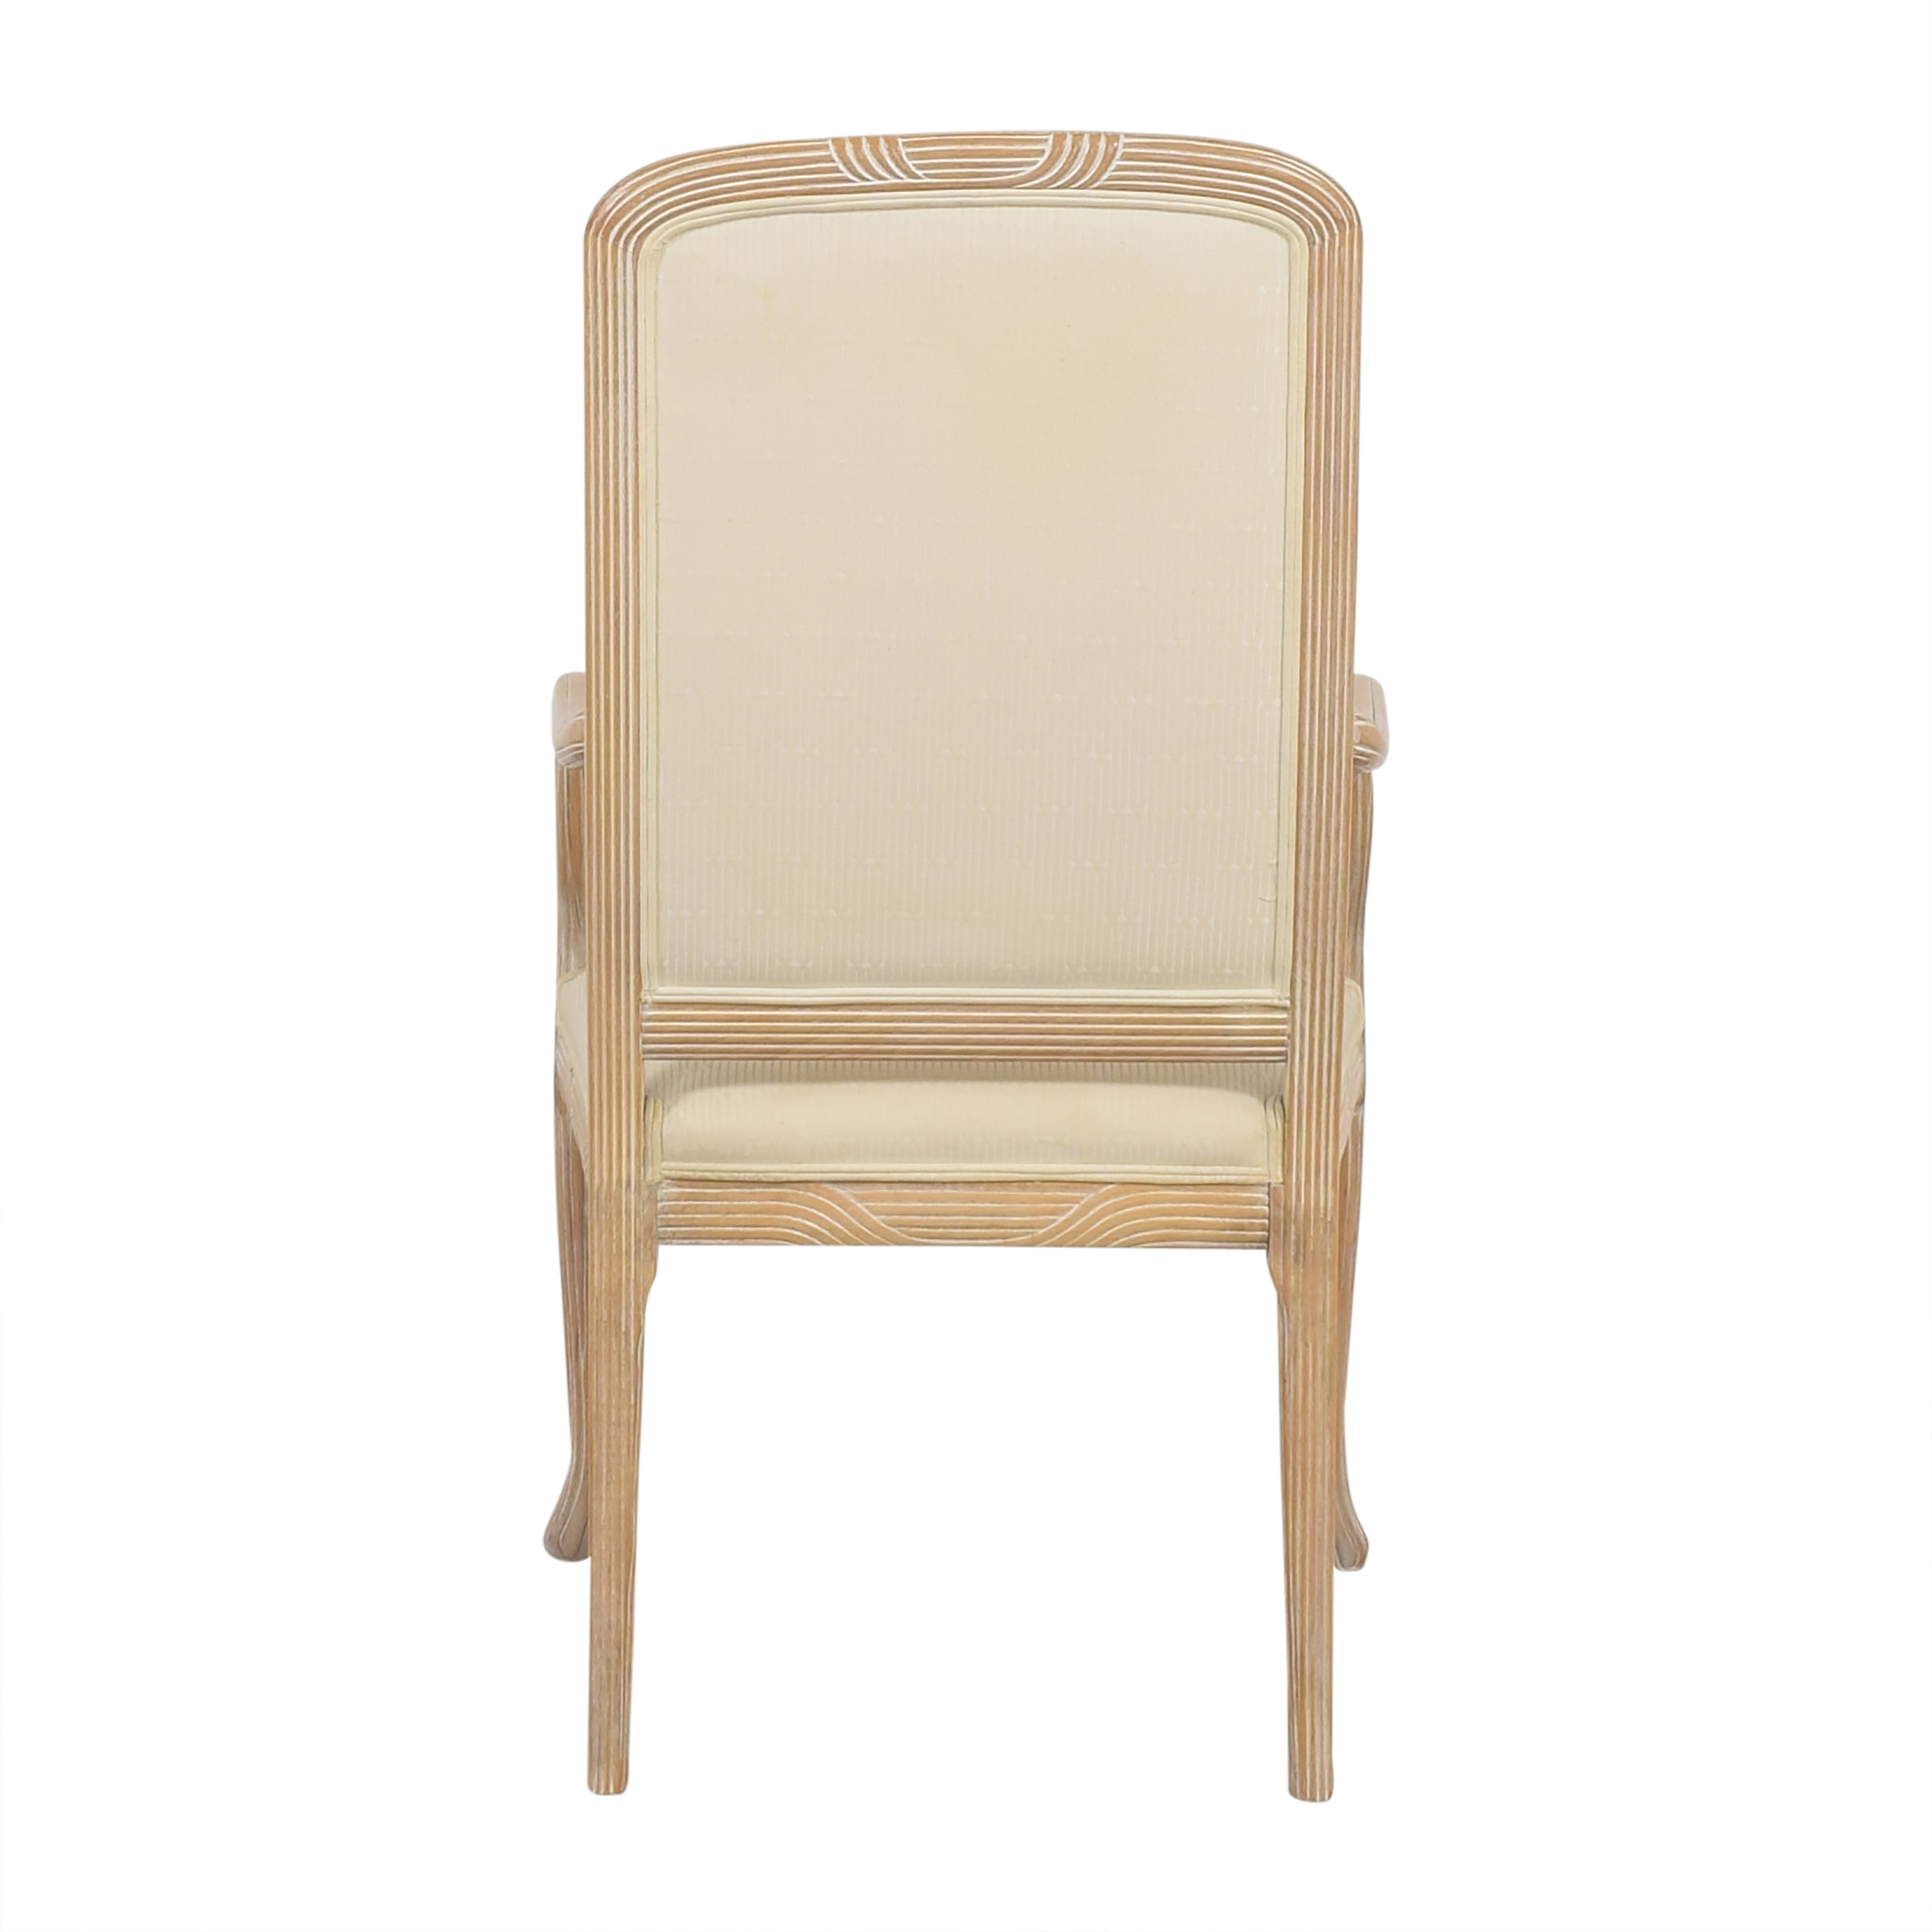 Buying & Design Upholstered Dining Arm Chair / Chairs